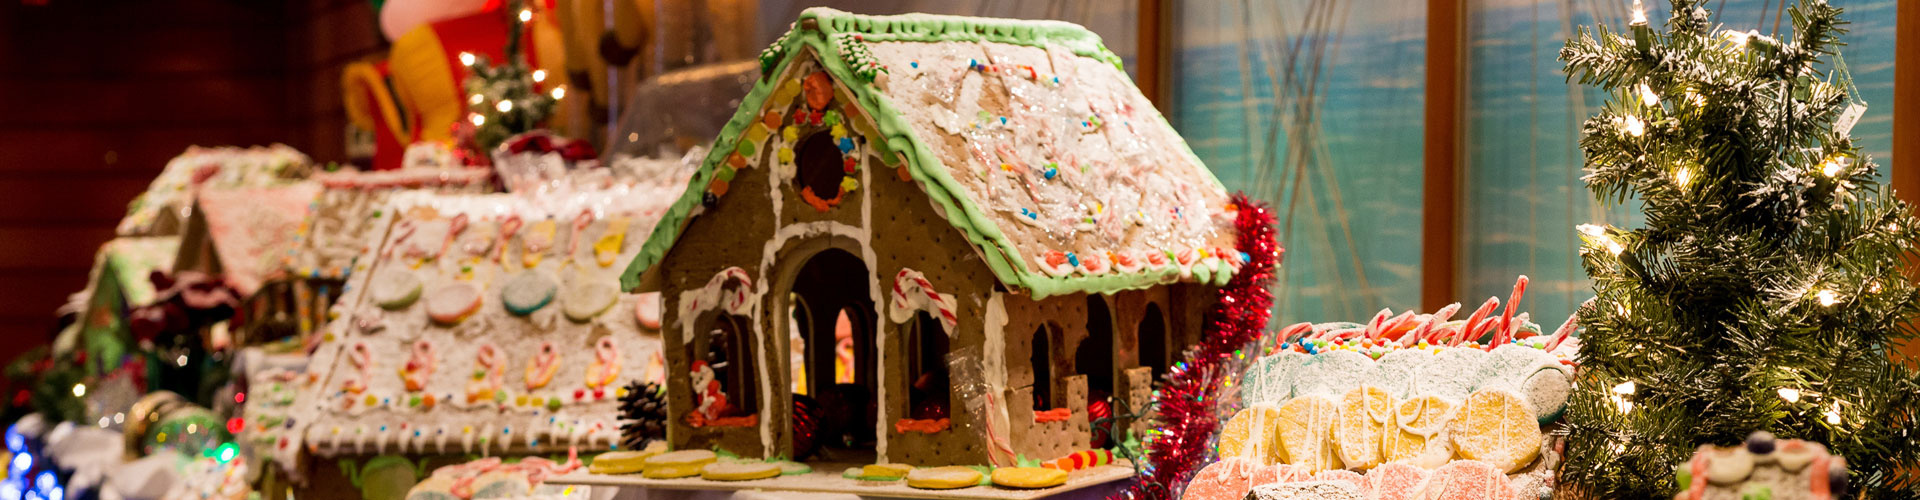 Christmas Tree Elegance and Ginger Bread House Competition @ Bluegrass Country Club Hendersonville